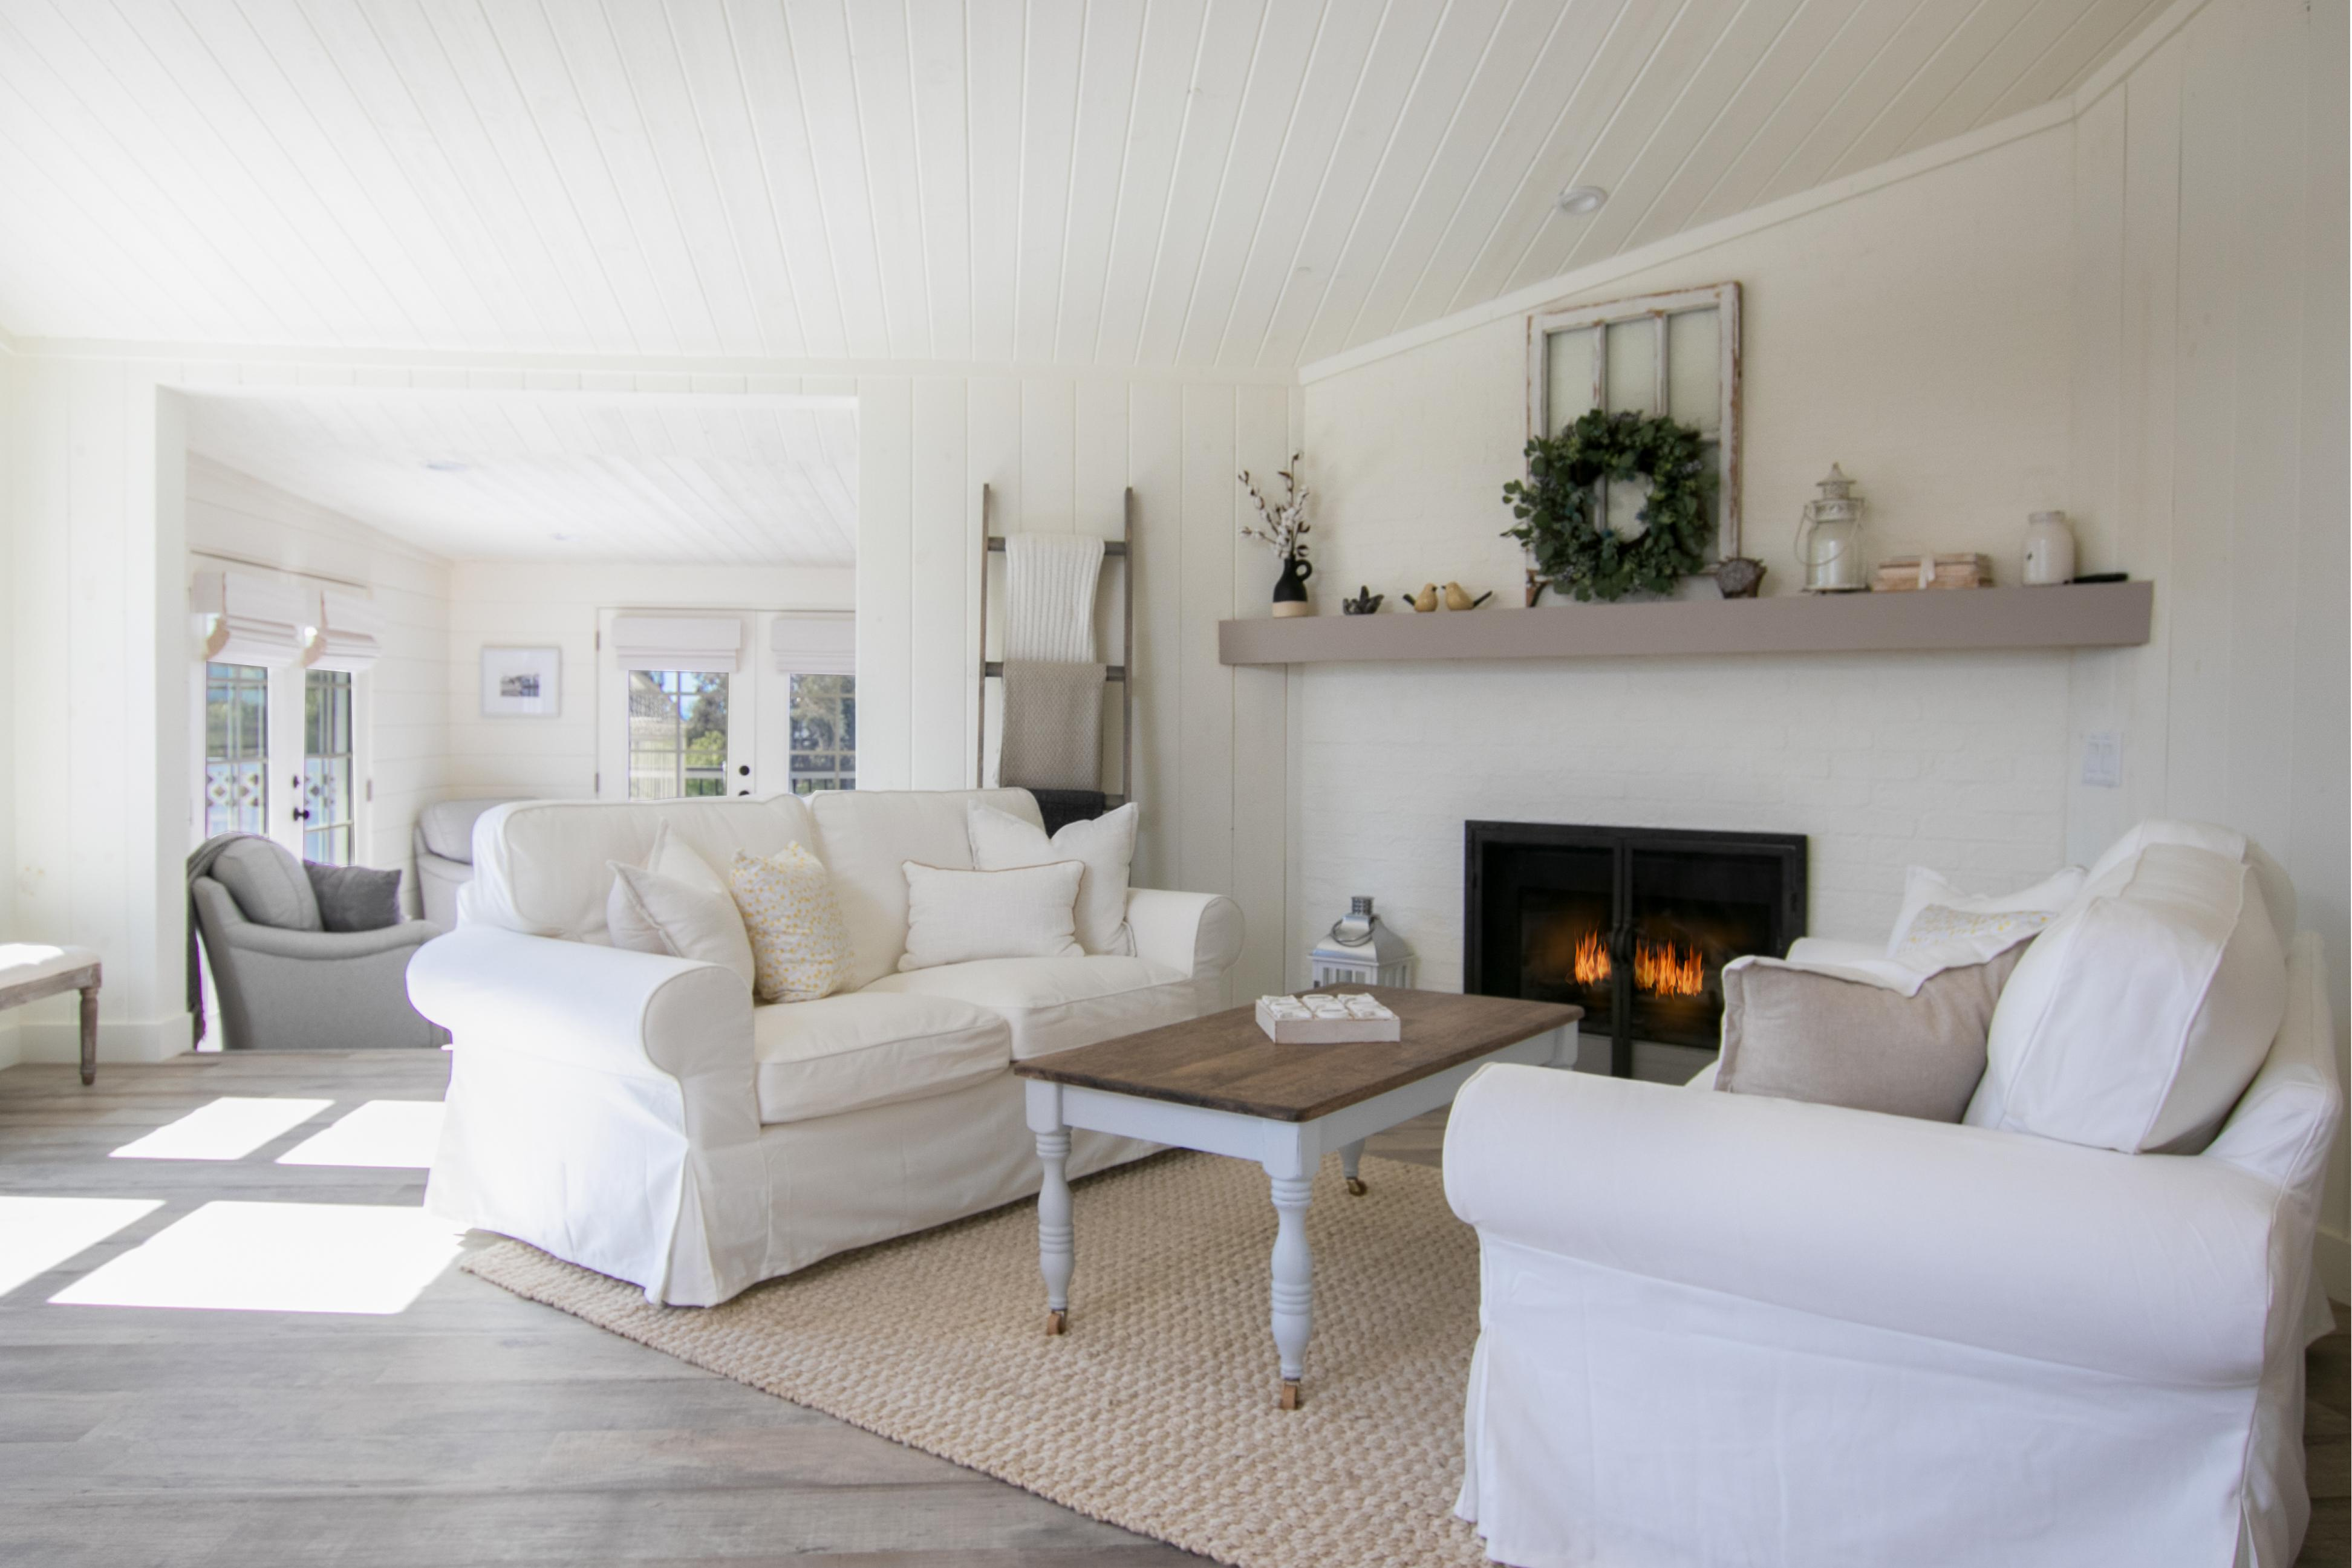 Main House: A gas fireplace provides additional warmth and allure to the living room.